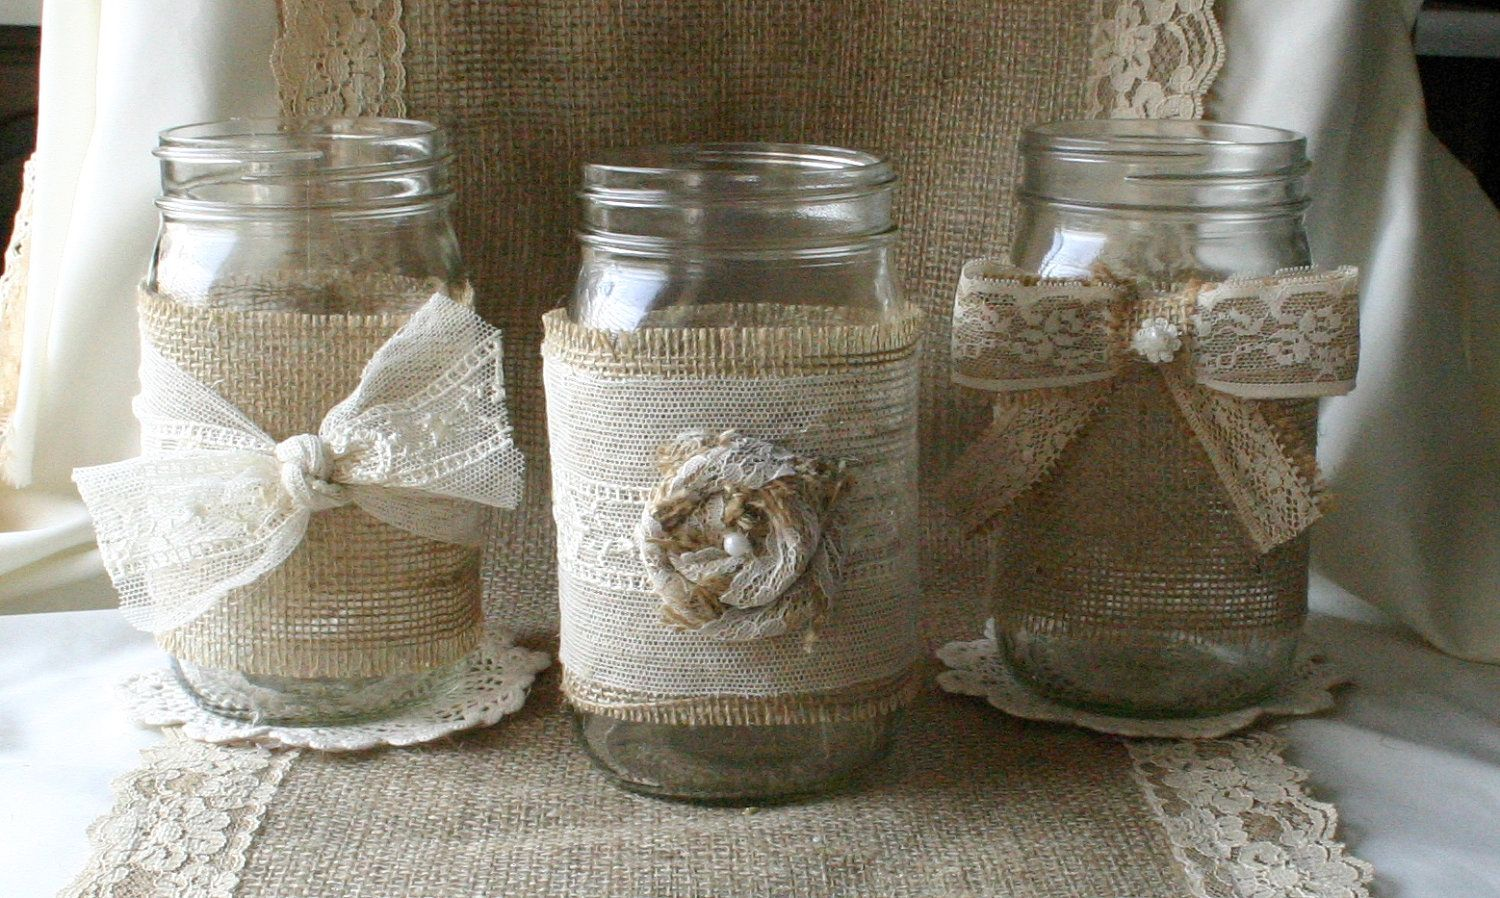 Wedding decorations ideas at home  Chic Rustic Wedding Decoration Ideas   wedding decorations